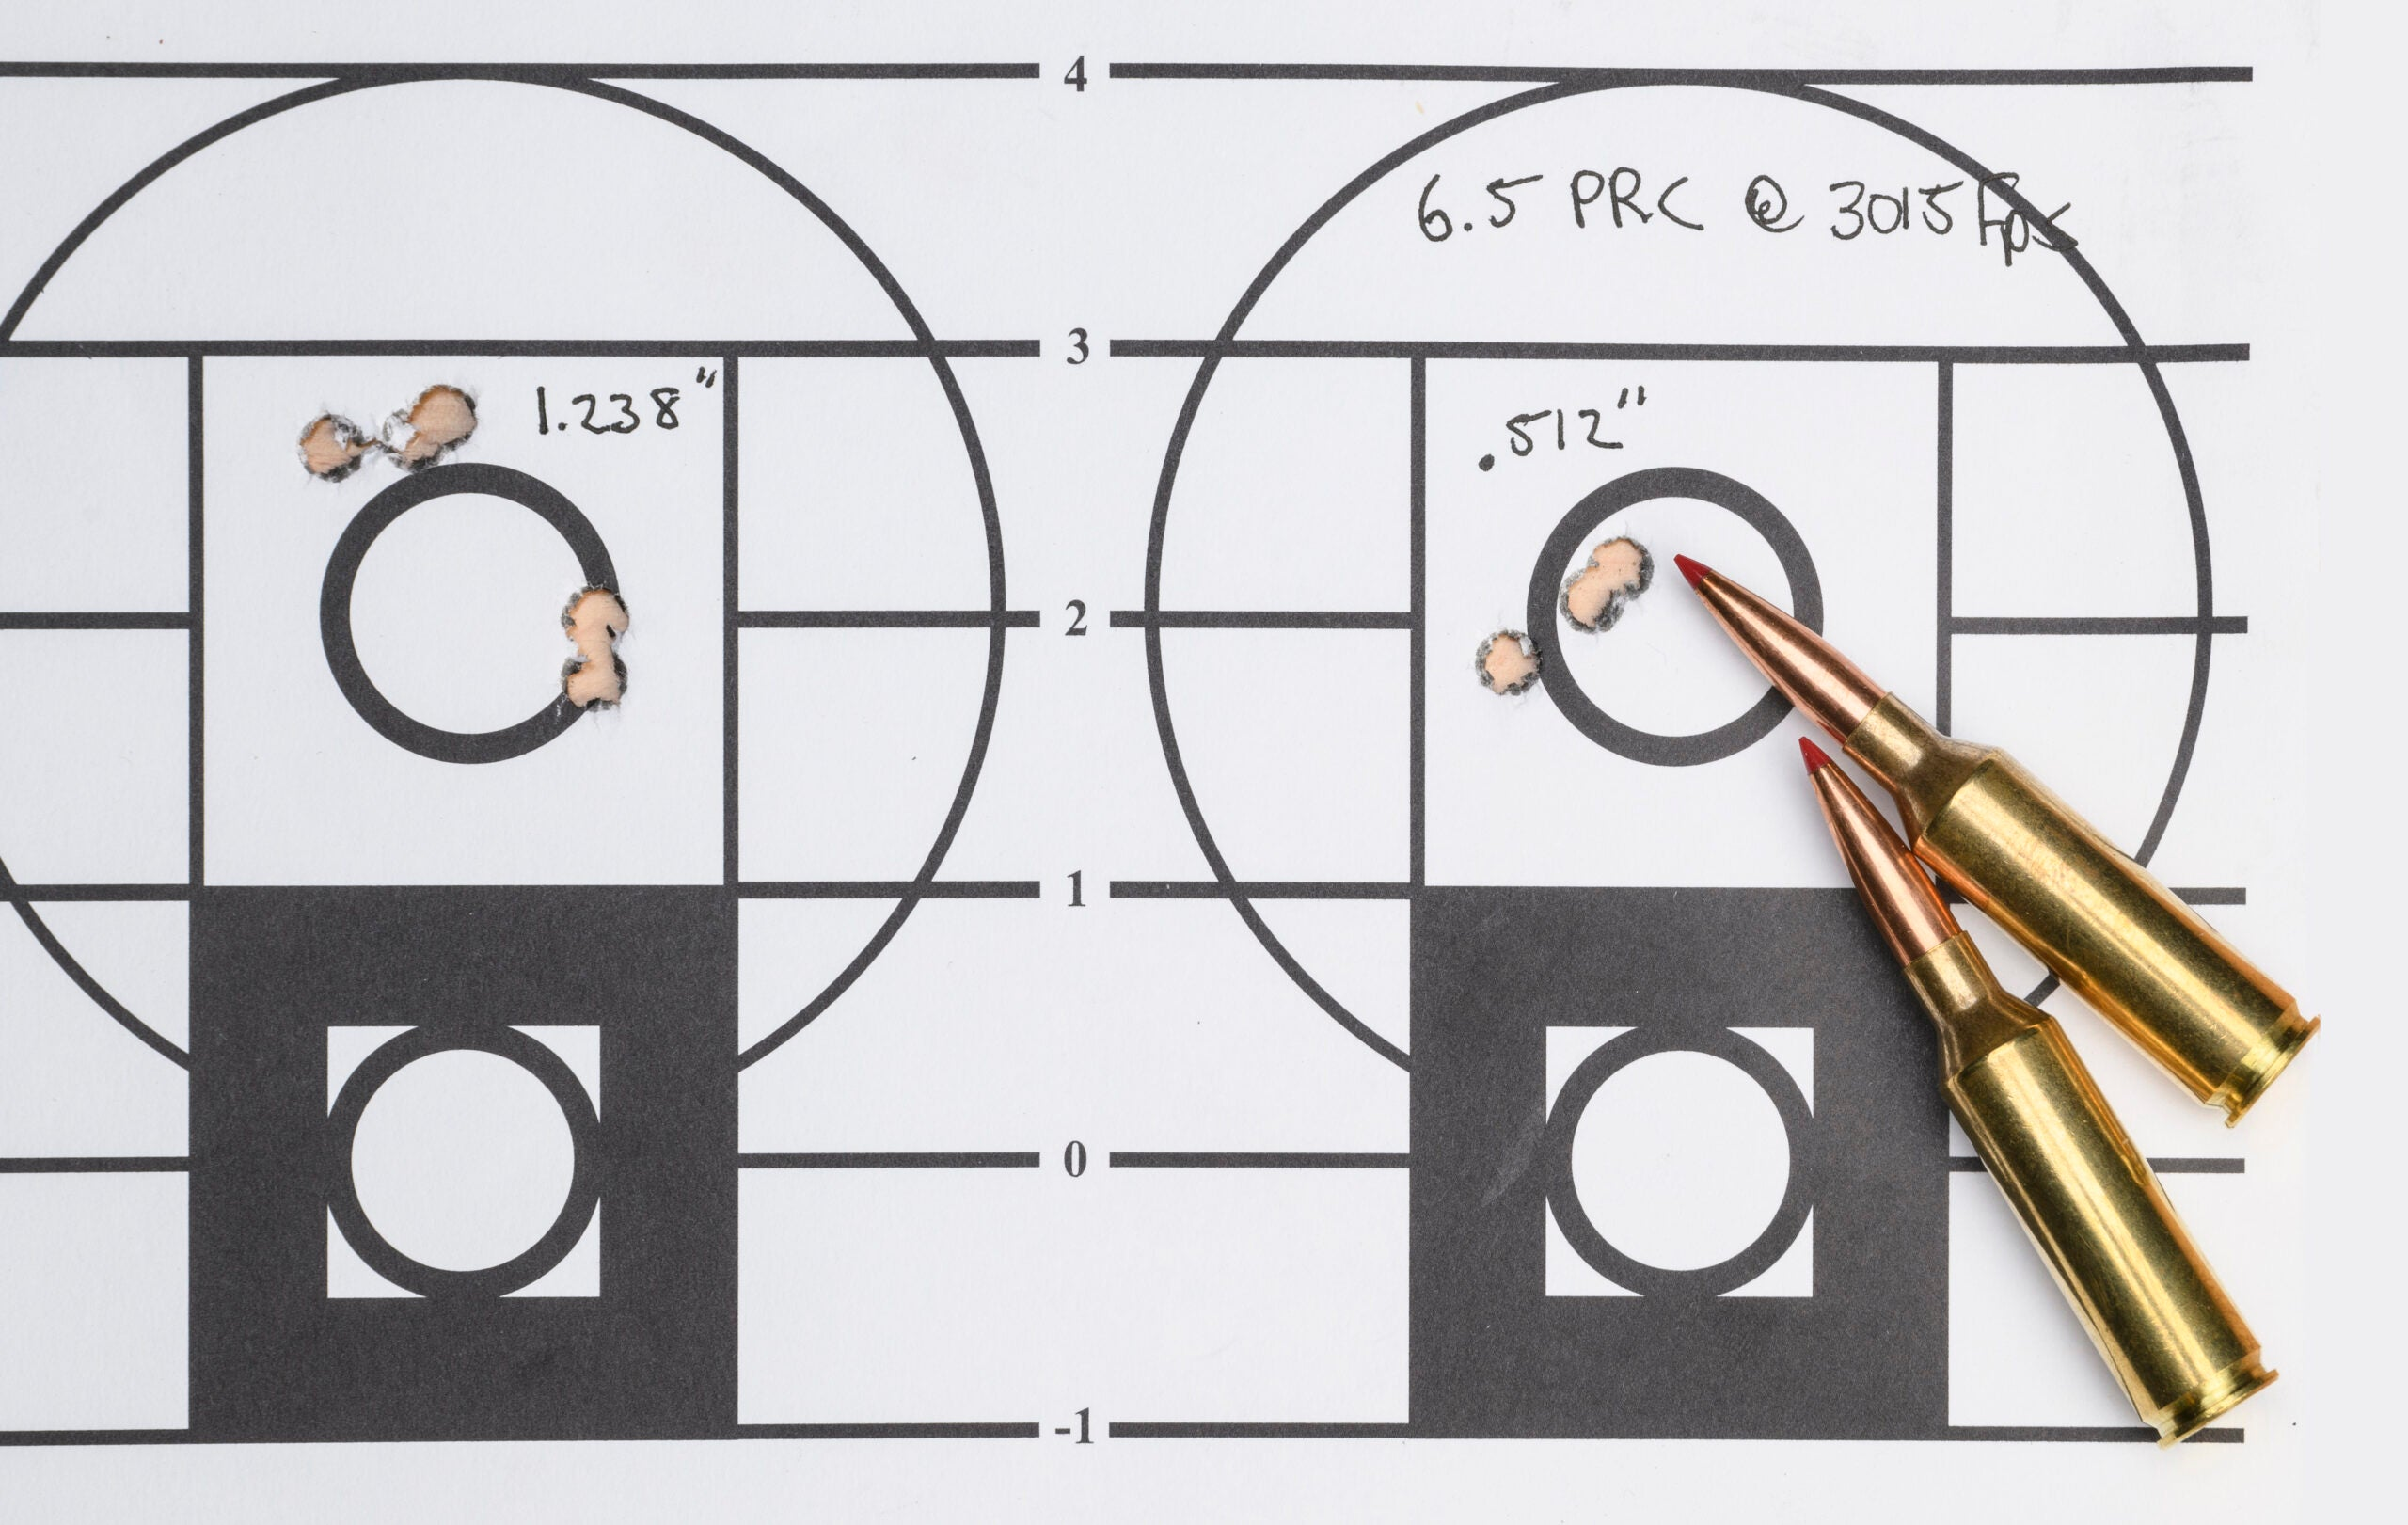 A side-by-side comparison on a paper rifle target of a group of five bullet holes, slightly larger than the tighter group of three bullet holes.